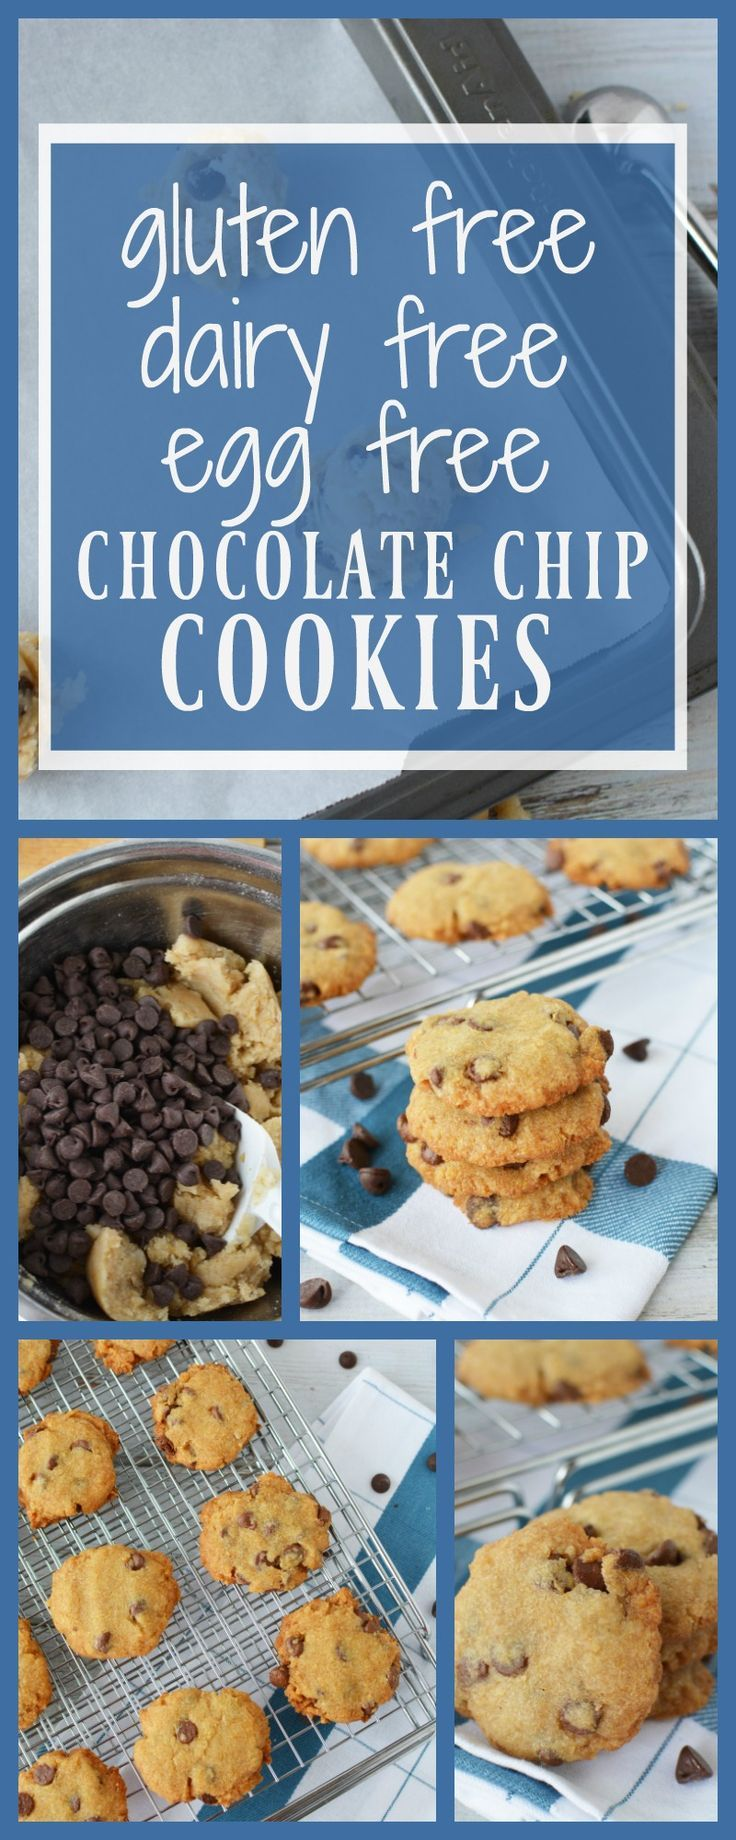 """No, these aren't """"diet cookies"""" but they are made without wheat, eggs or dairy. And they're delish!   Gluten Free egg free chocolate chip cookies